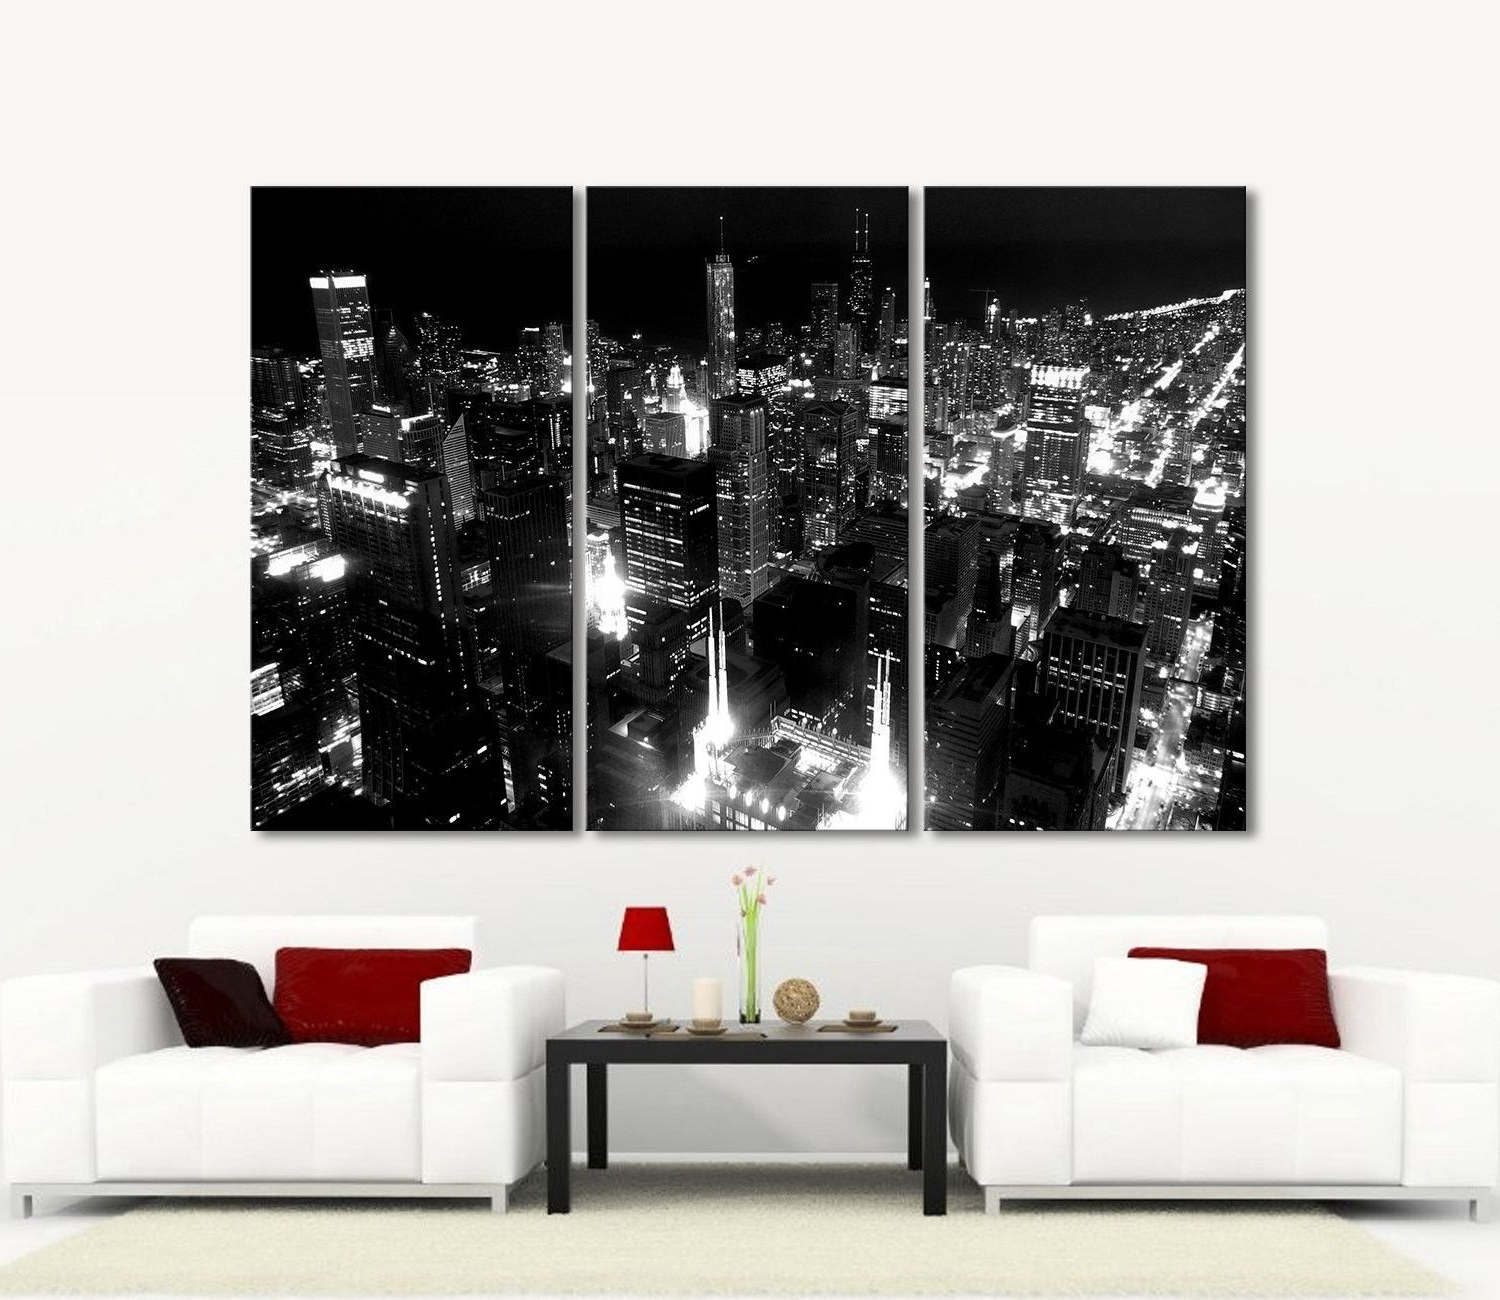 Large Wall Art Canvas Print Chicago City Skyline At Night – 3 Panel Inside Well Known Chicago Wall Art (View 7 of 15)